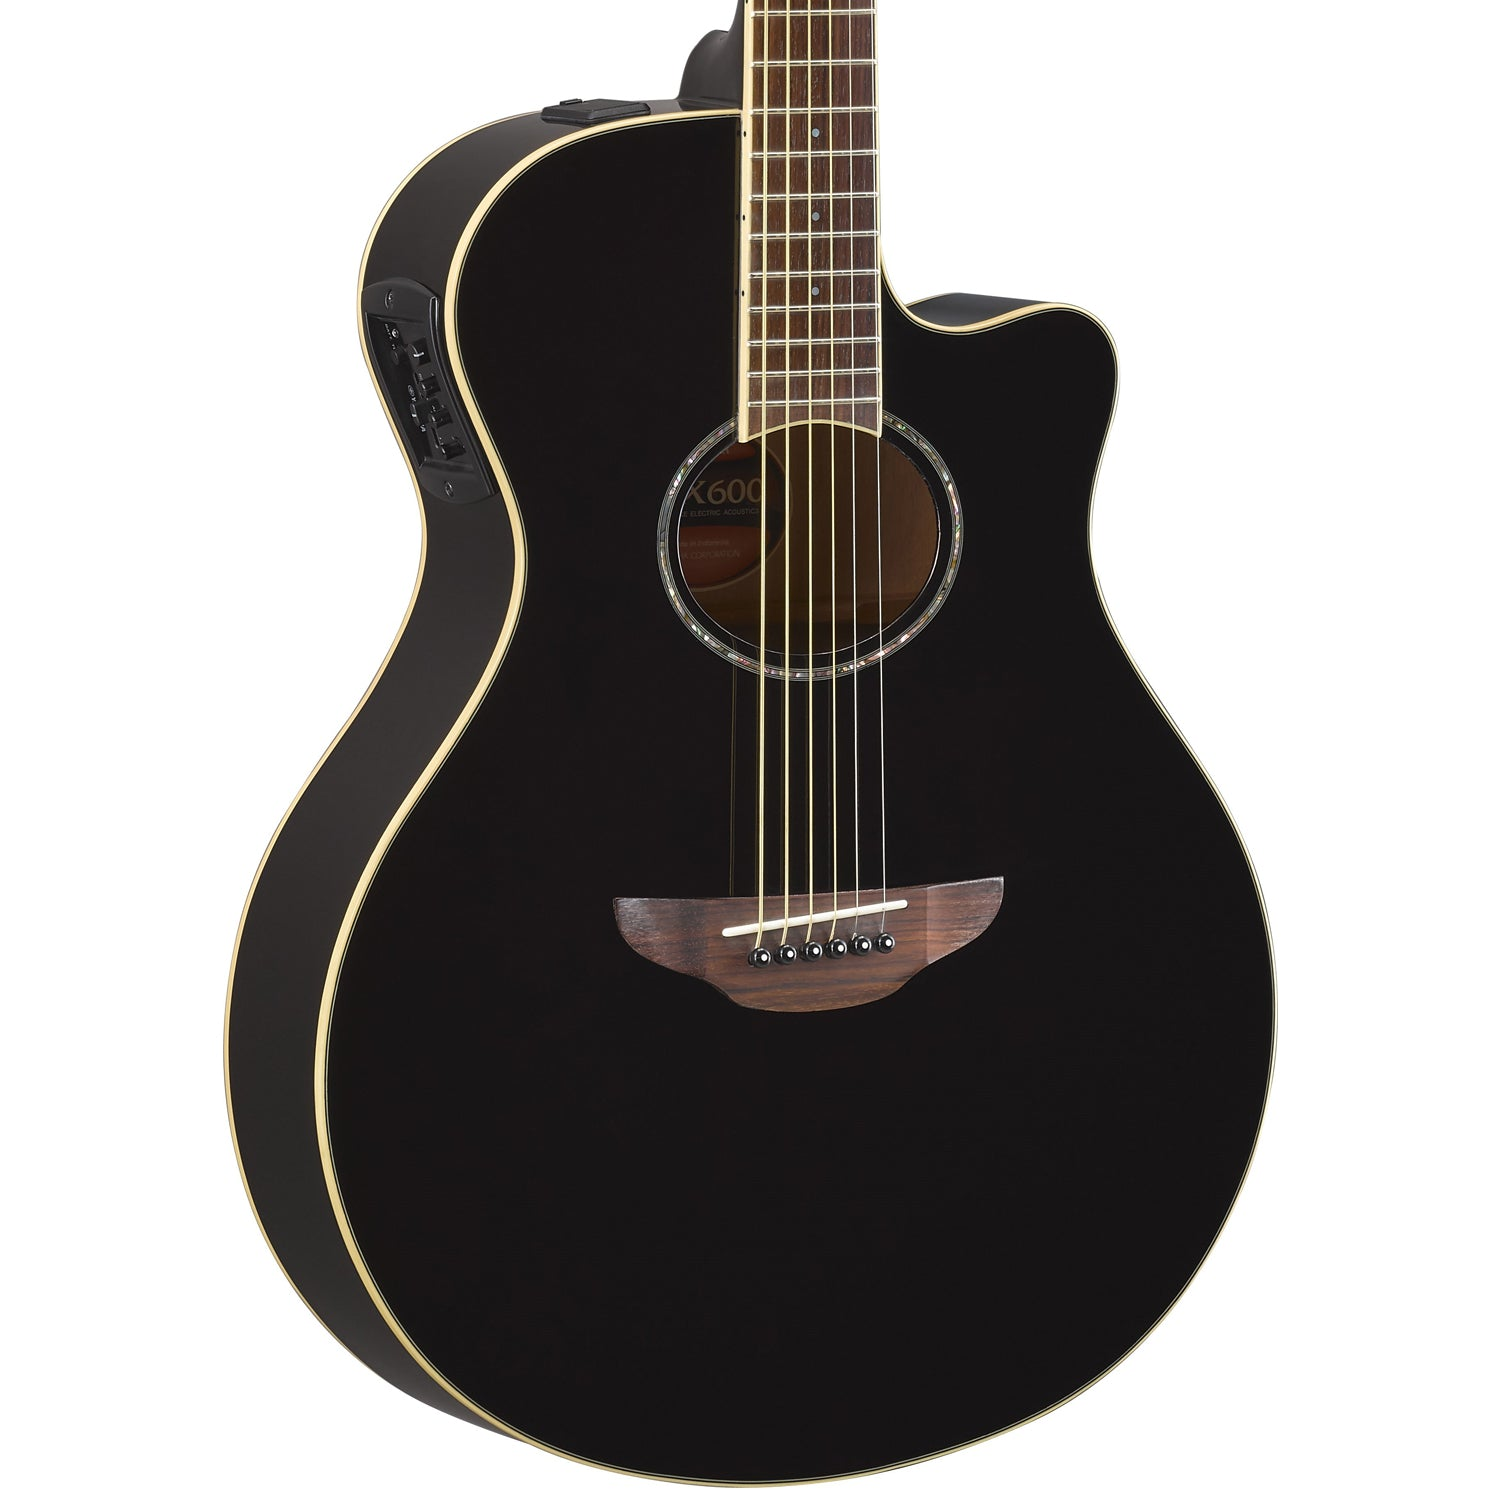 yamaha apx600 thin body acoustic electric guitar with gig bag access godpsmusic. Black Bedroom Furniture Sets. Home Design Ideas